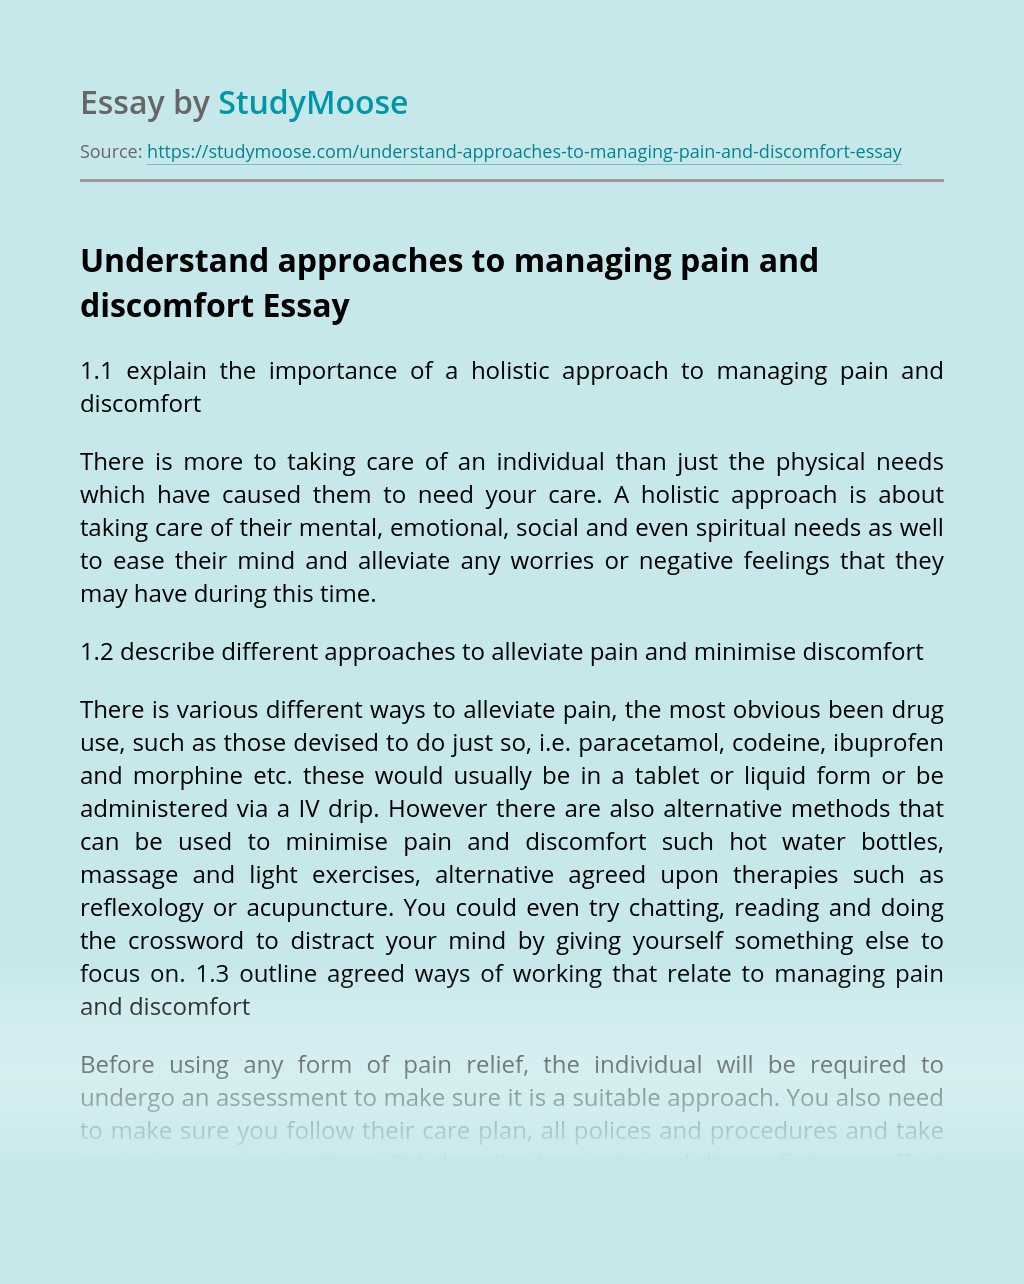 Understand approaches to managing pain and discomfort